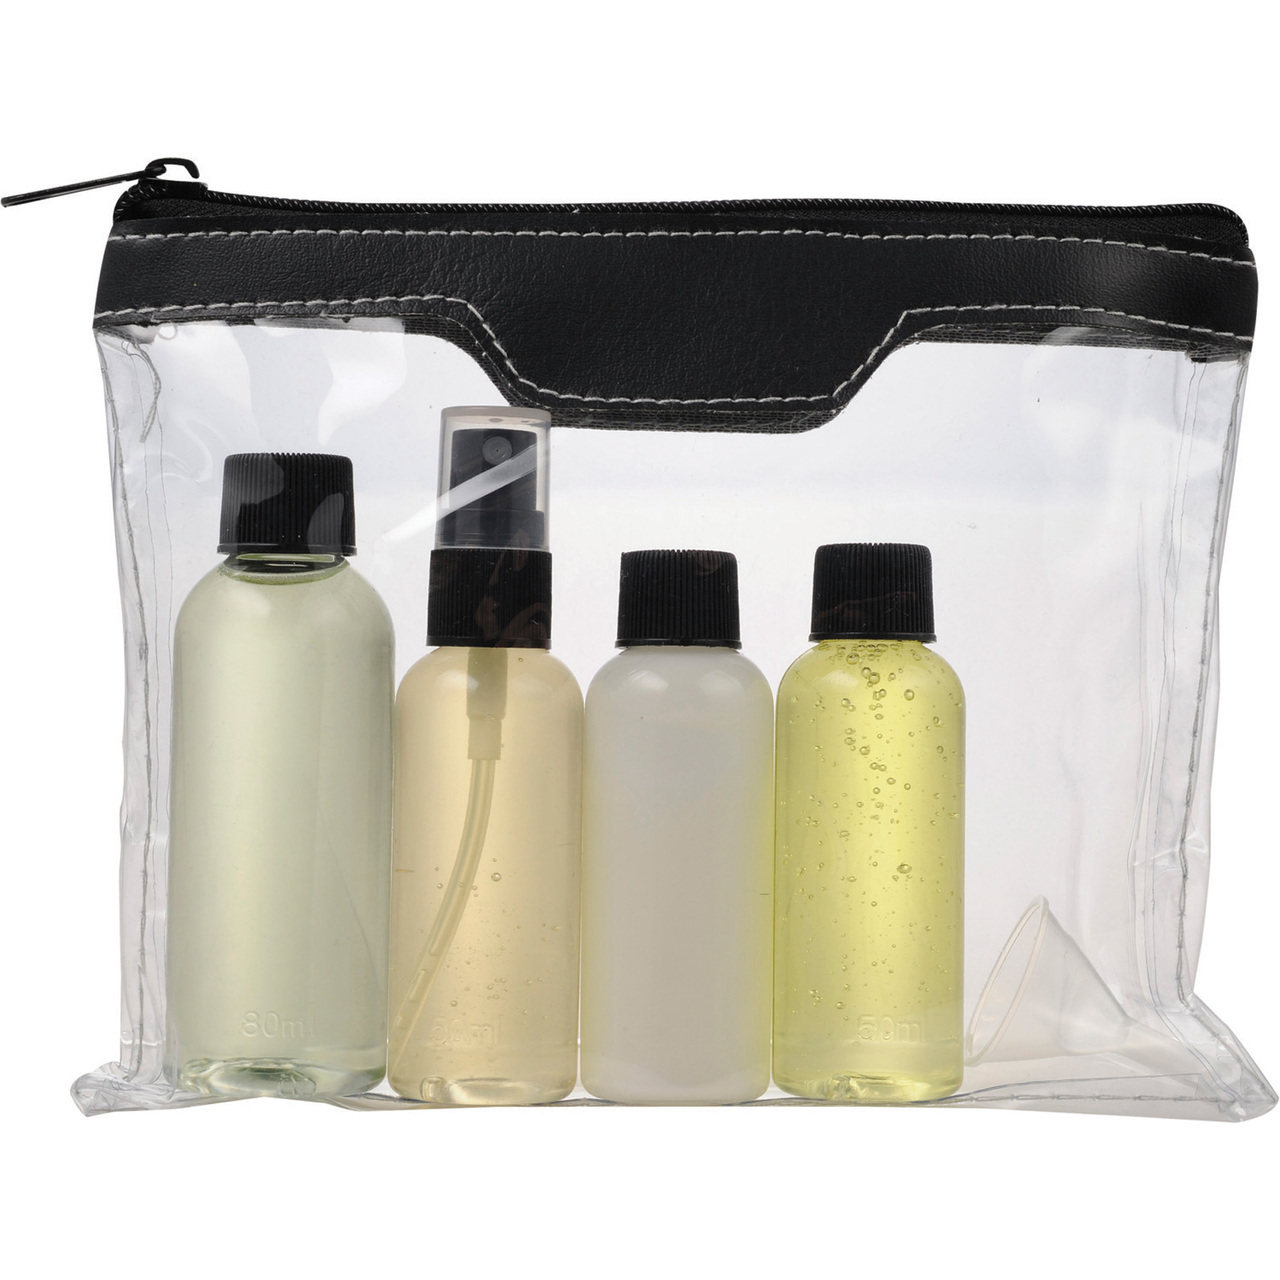 Travel Gift #3: AIR SAFE TOILETRY KIT